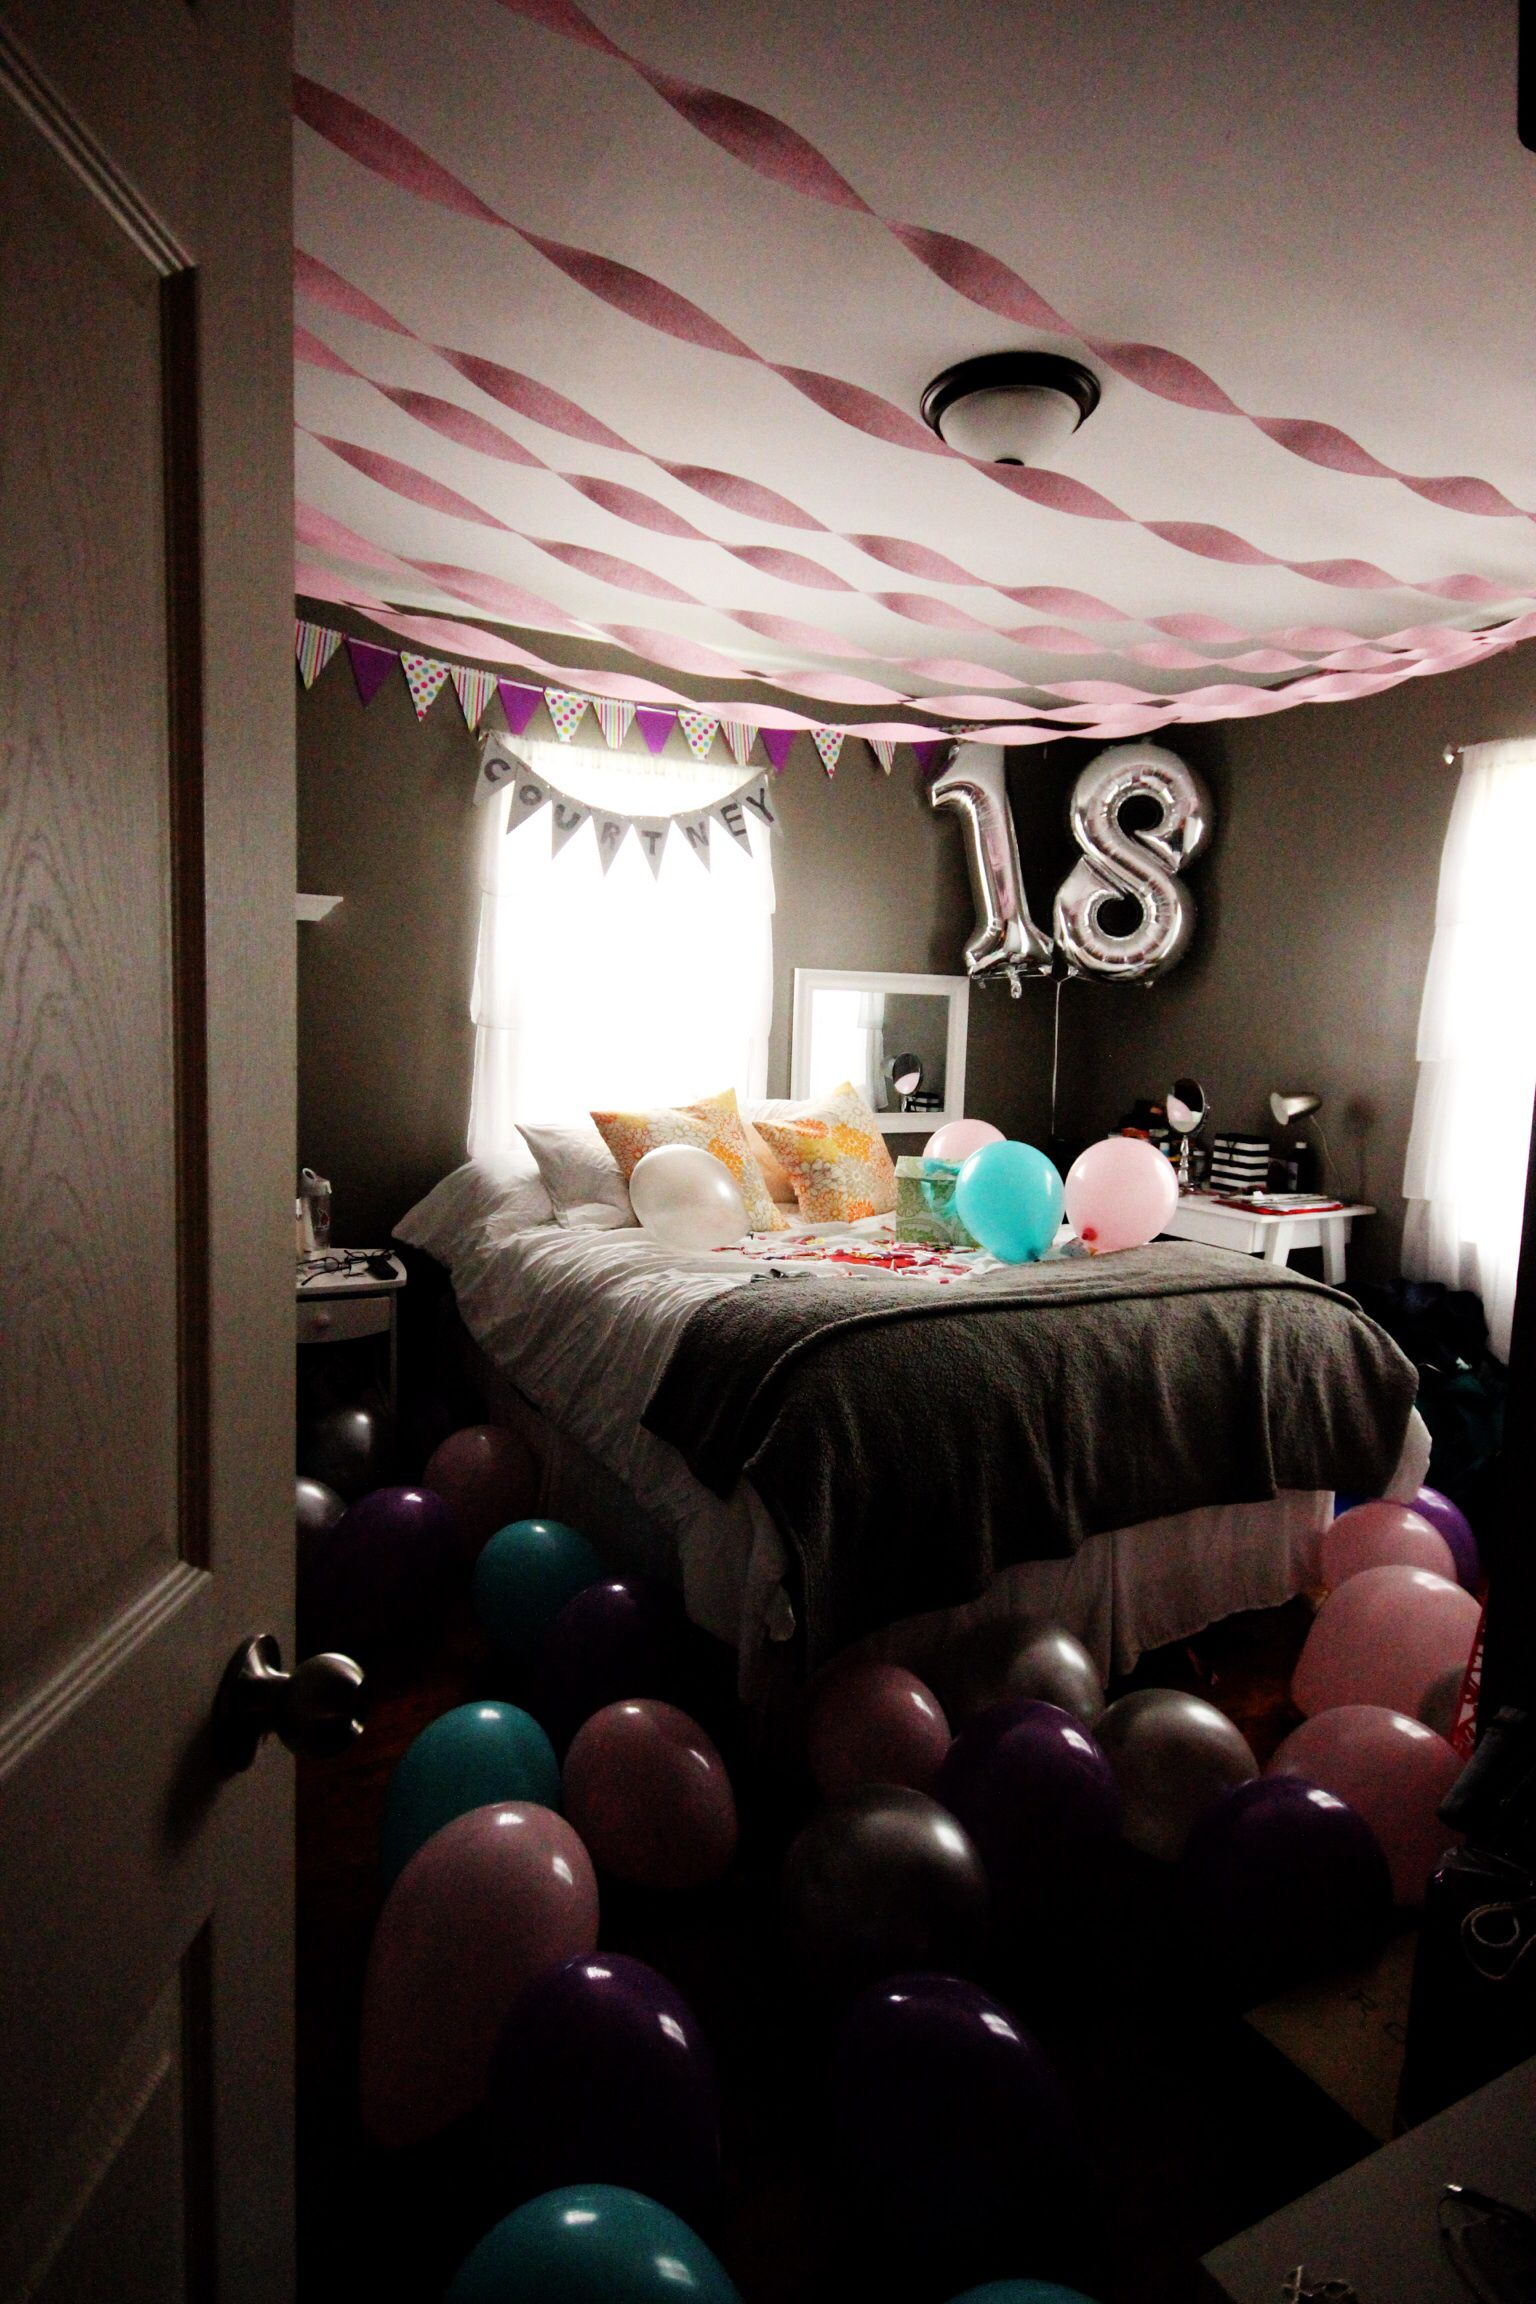 bedroom surprise for birthday it 39 s me kiersten marie